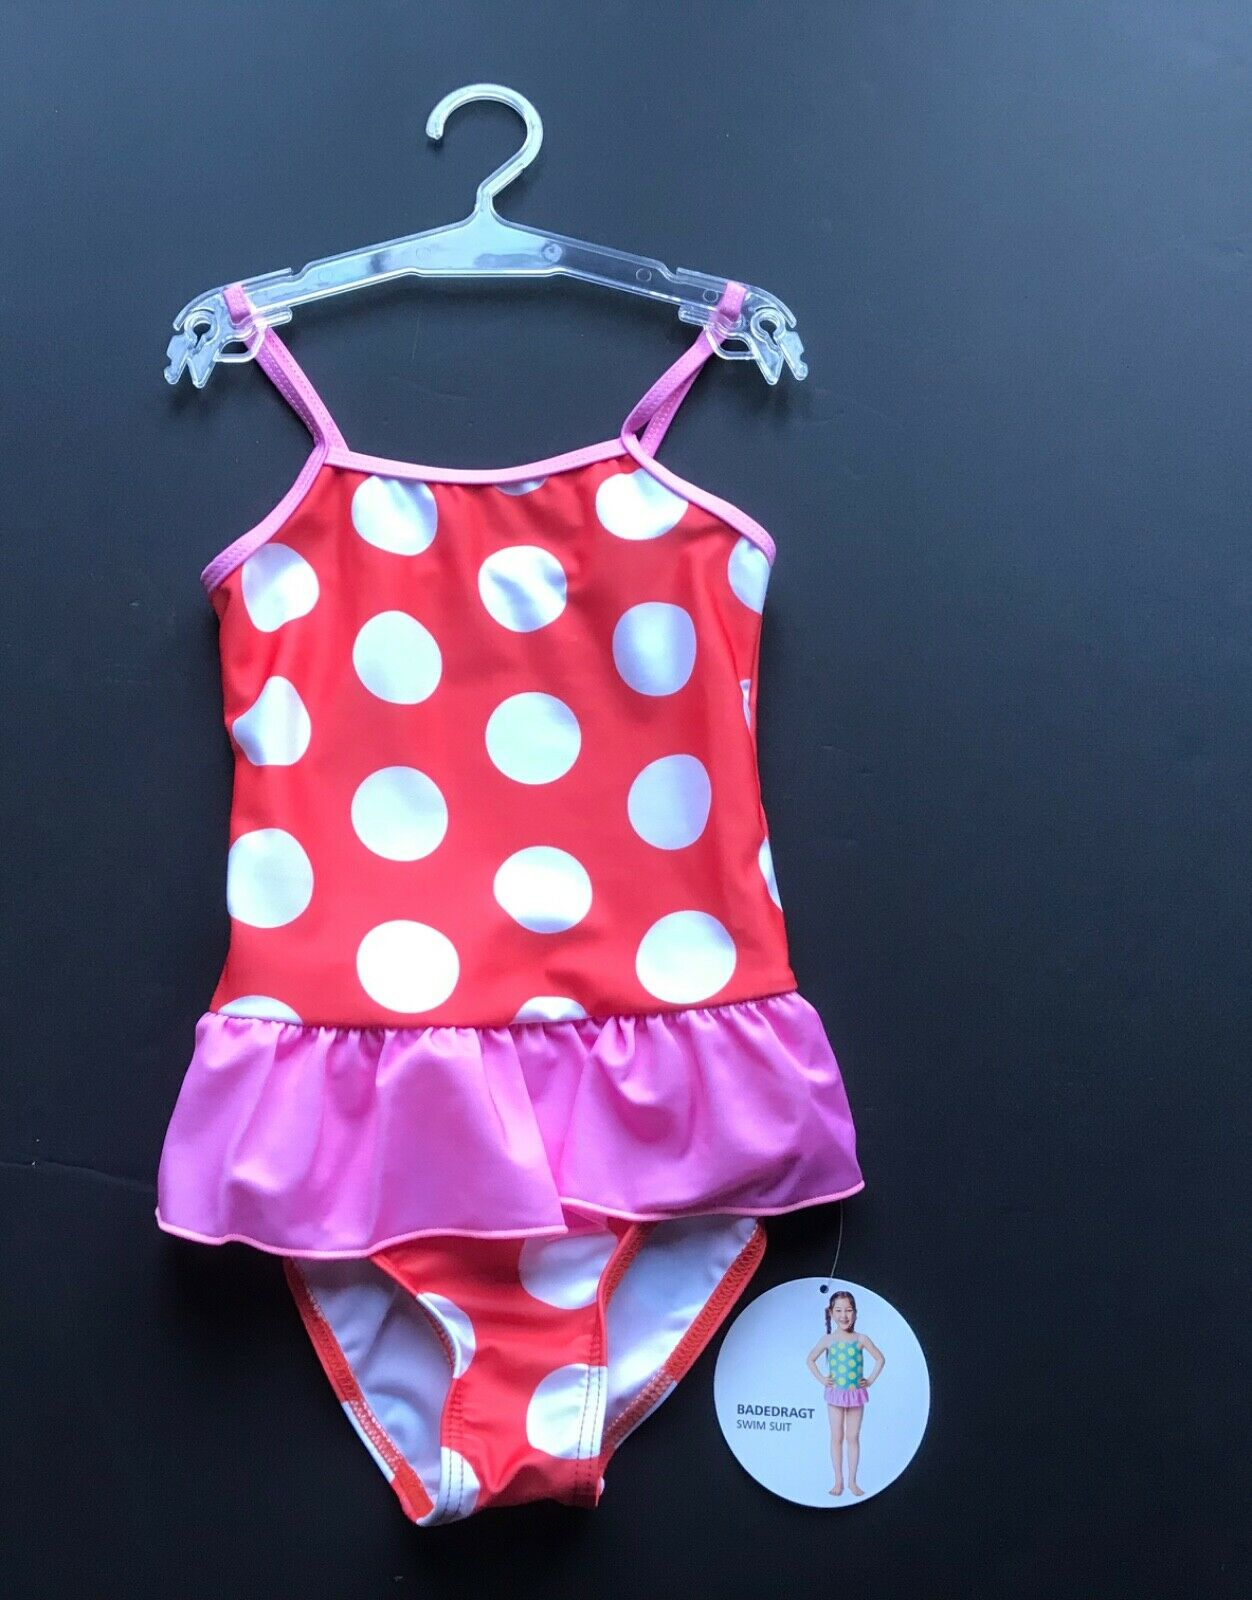 BNWT CHILD/'S TODDLER GIRLS SWIMMING COSTUME,OUTFIT,AGE 6 YEARS,SWIM SUIT